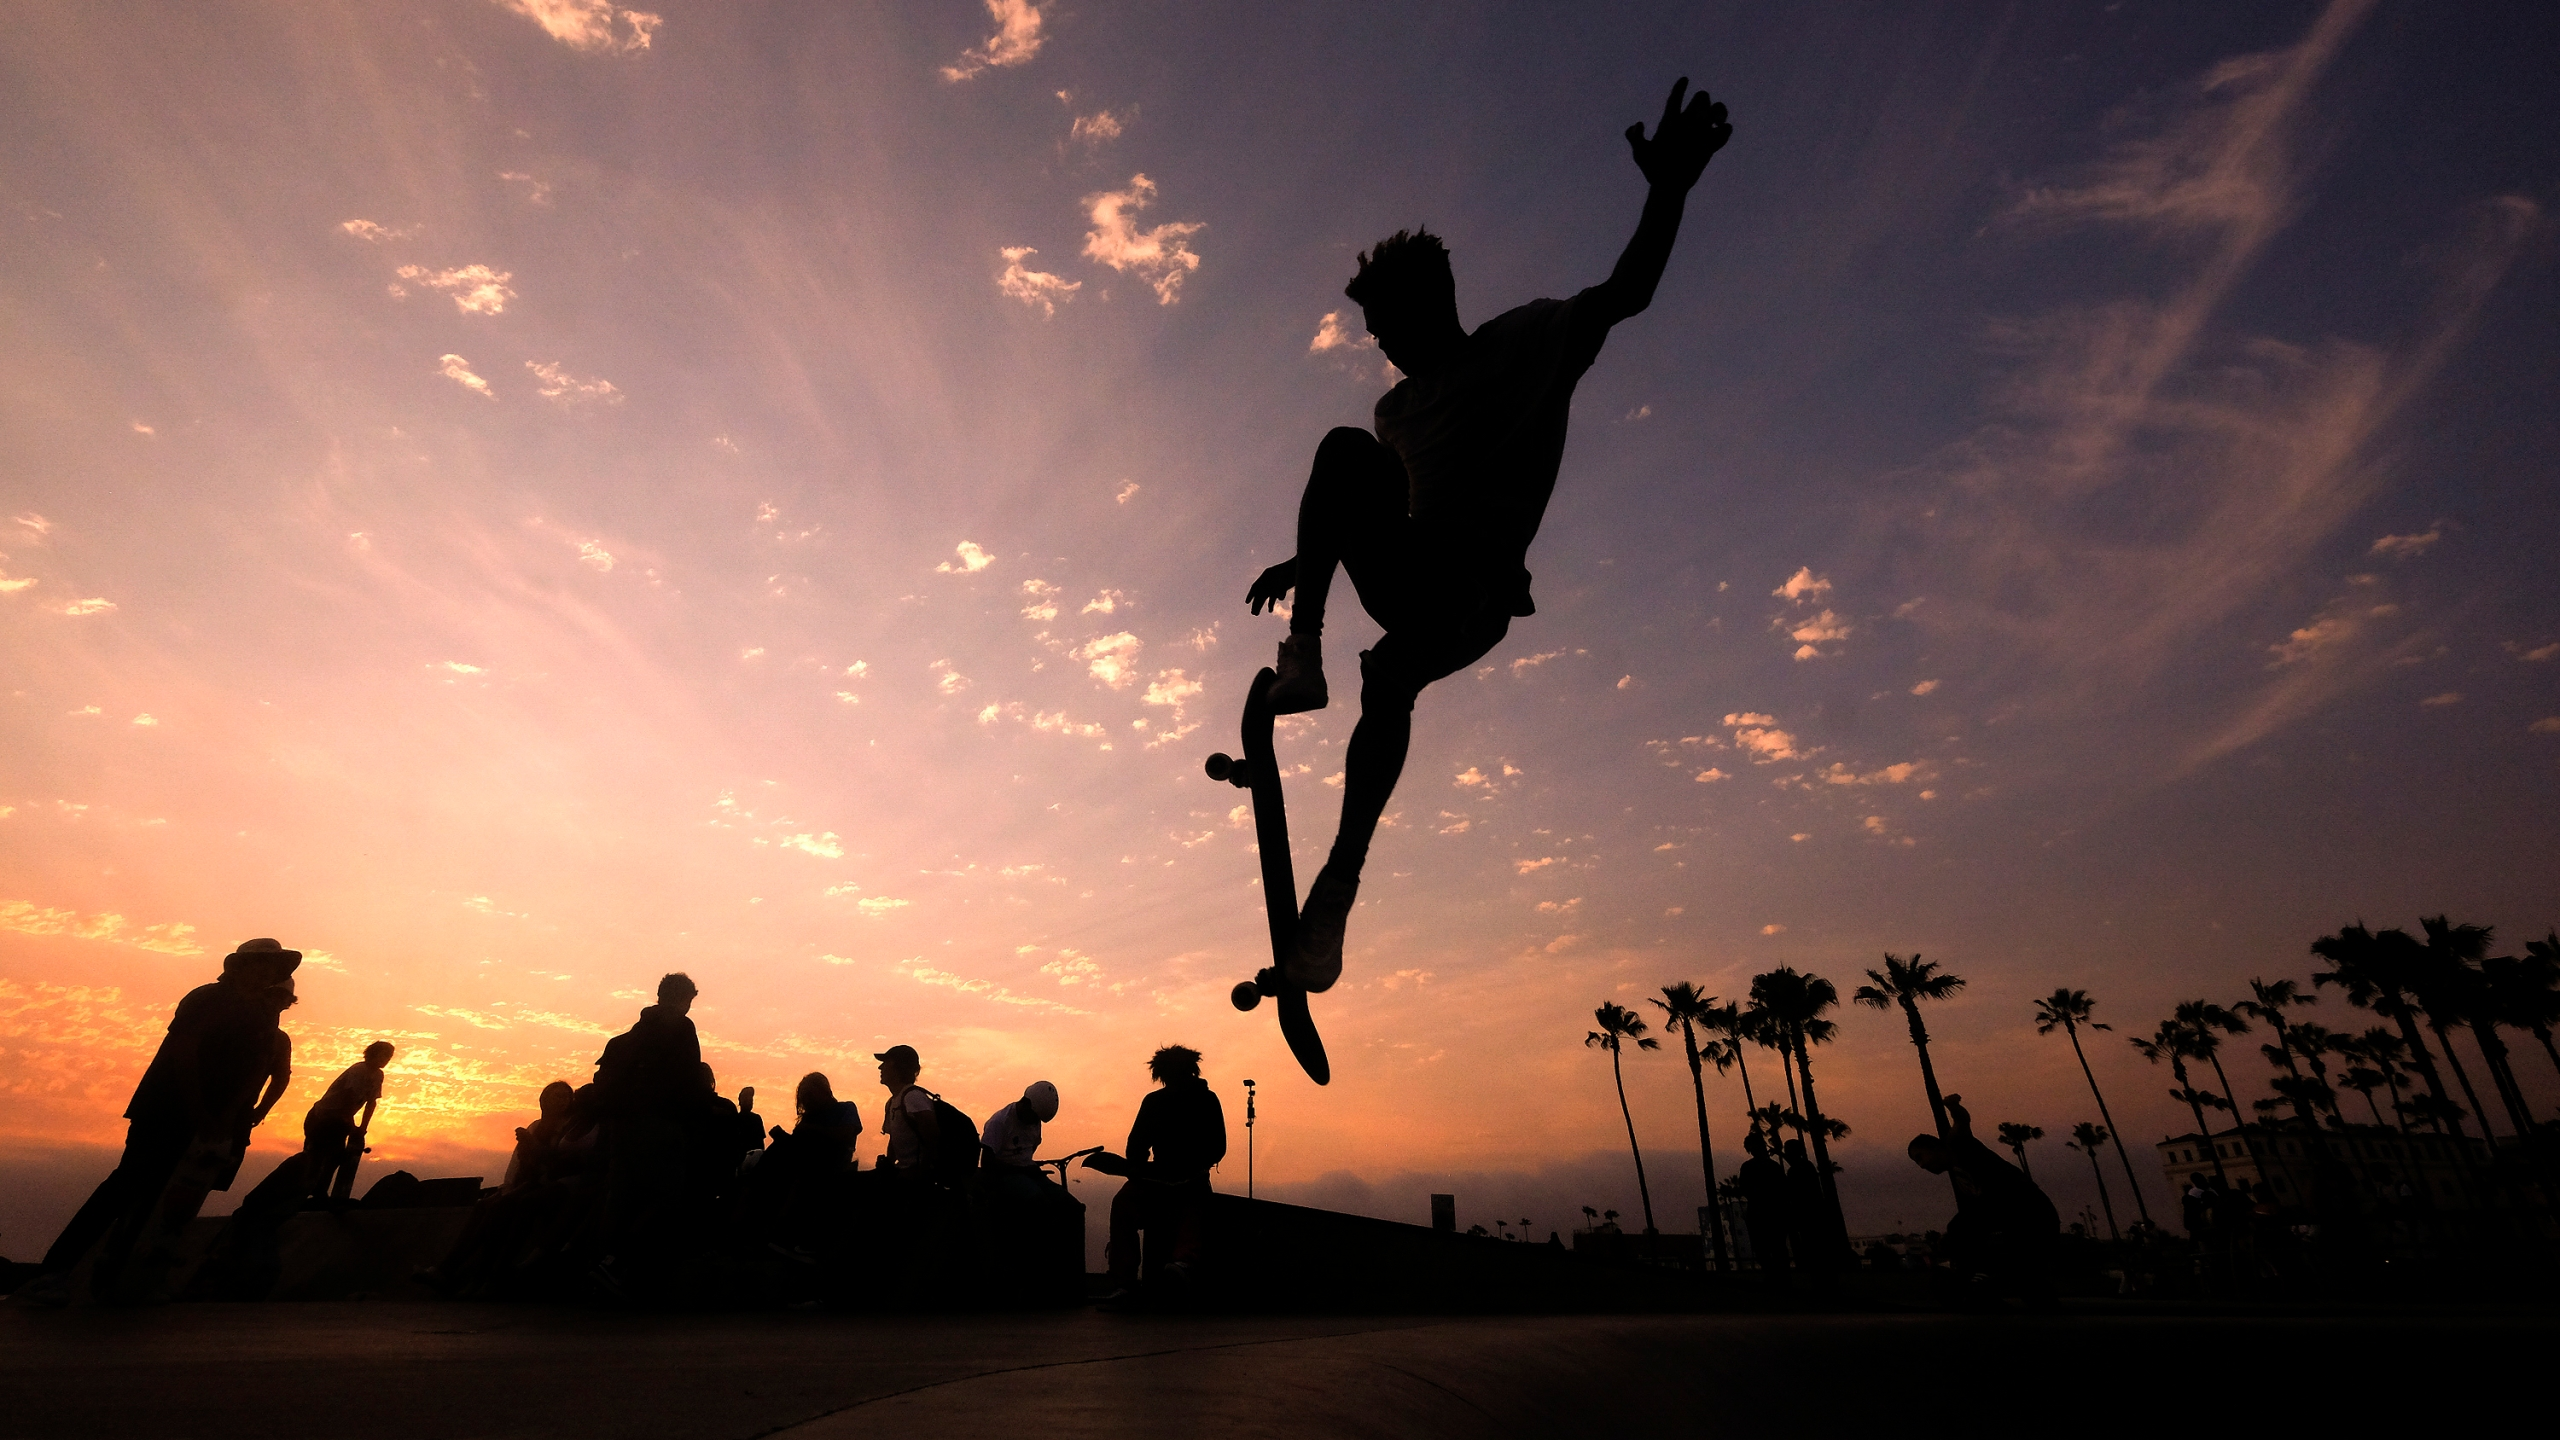 In this Wednesday, June 16, 2021, file photo, a skateboarder is silhouetted as he jumps high at the skateboard park during sunset in the Venice Beach section of Los Angeles. The Southwest U.S. continued to bake Saturday, June 19, and weather forecasters kept warnings in effect for excessive heat in Arizona, Nevada and desert areas, at least through the weekend. (AP Photo/Ringo H.W. Chiu, File)